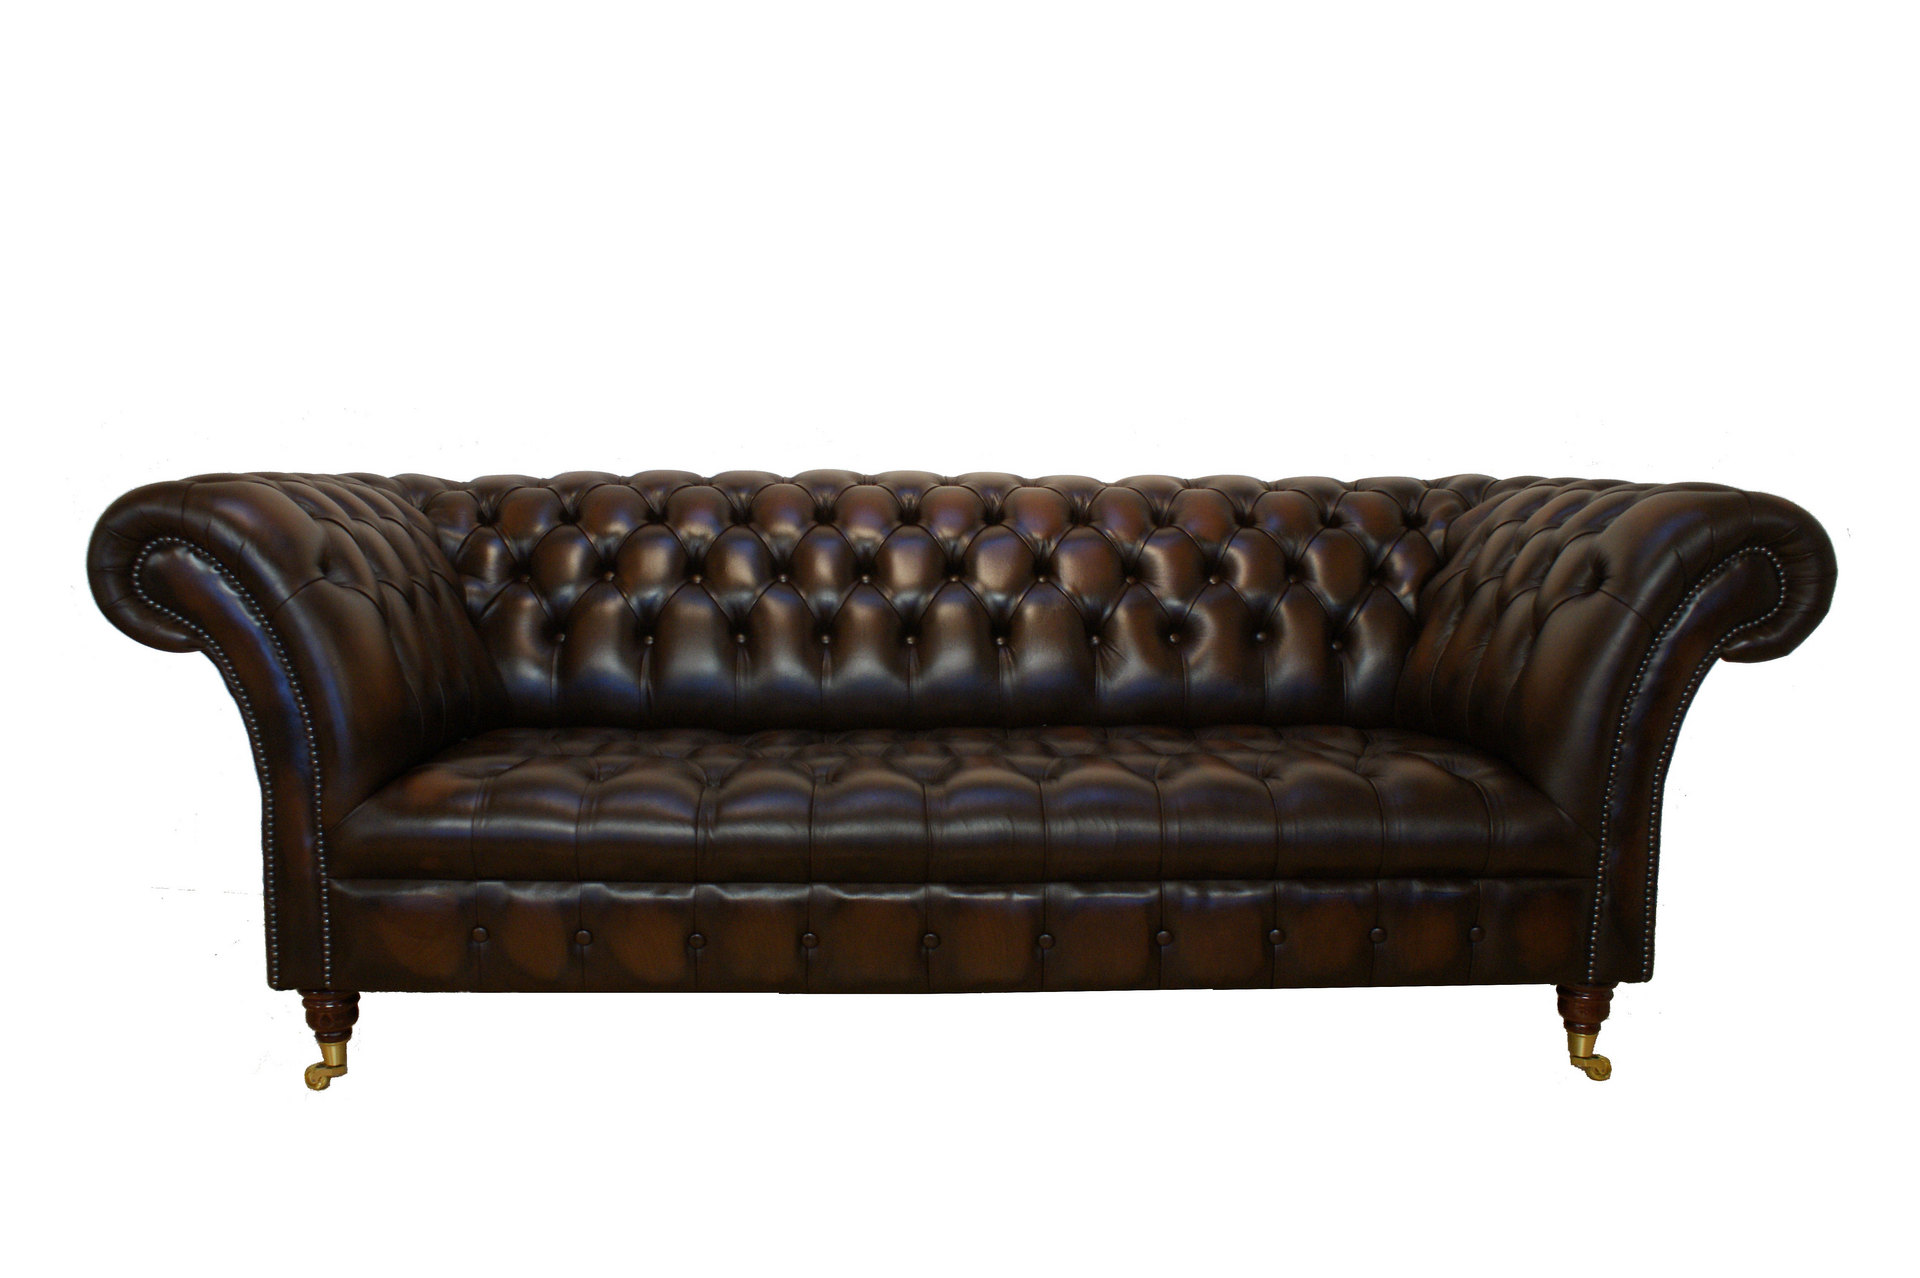 Fabric Chesterfield Sofa Manchester Refil Sofa